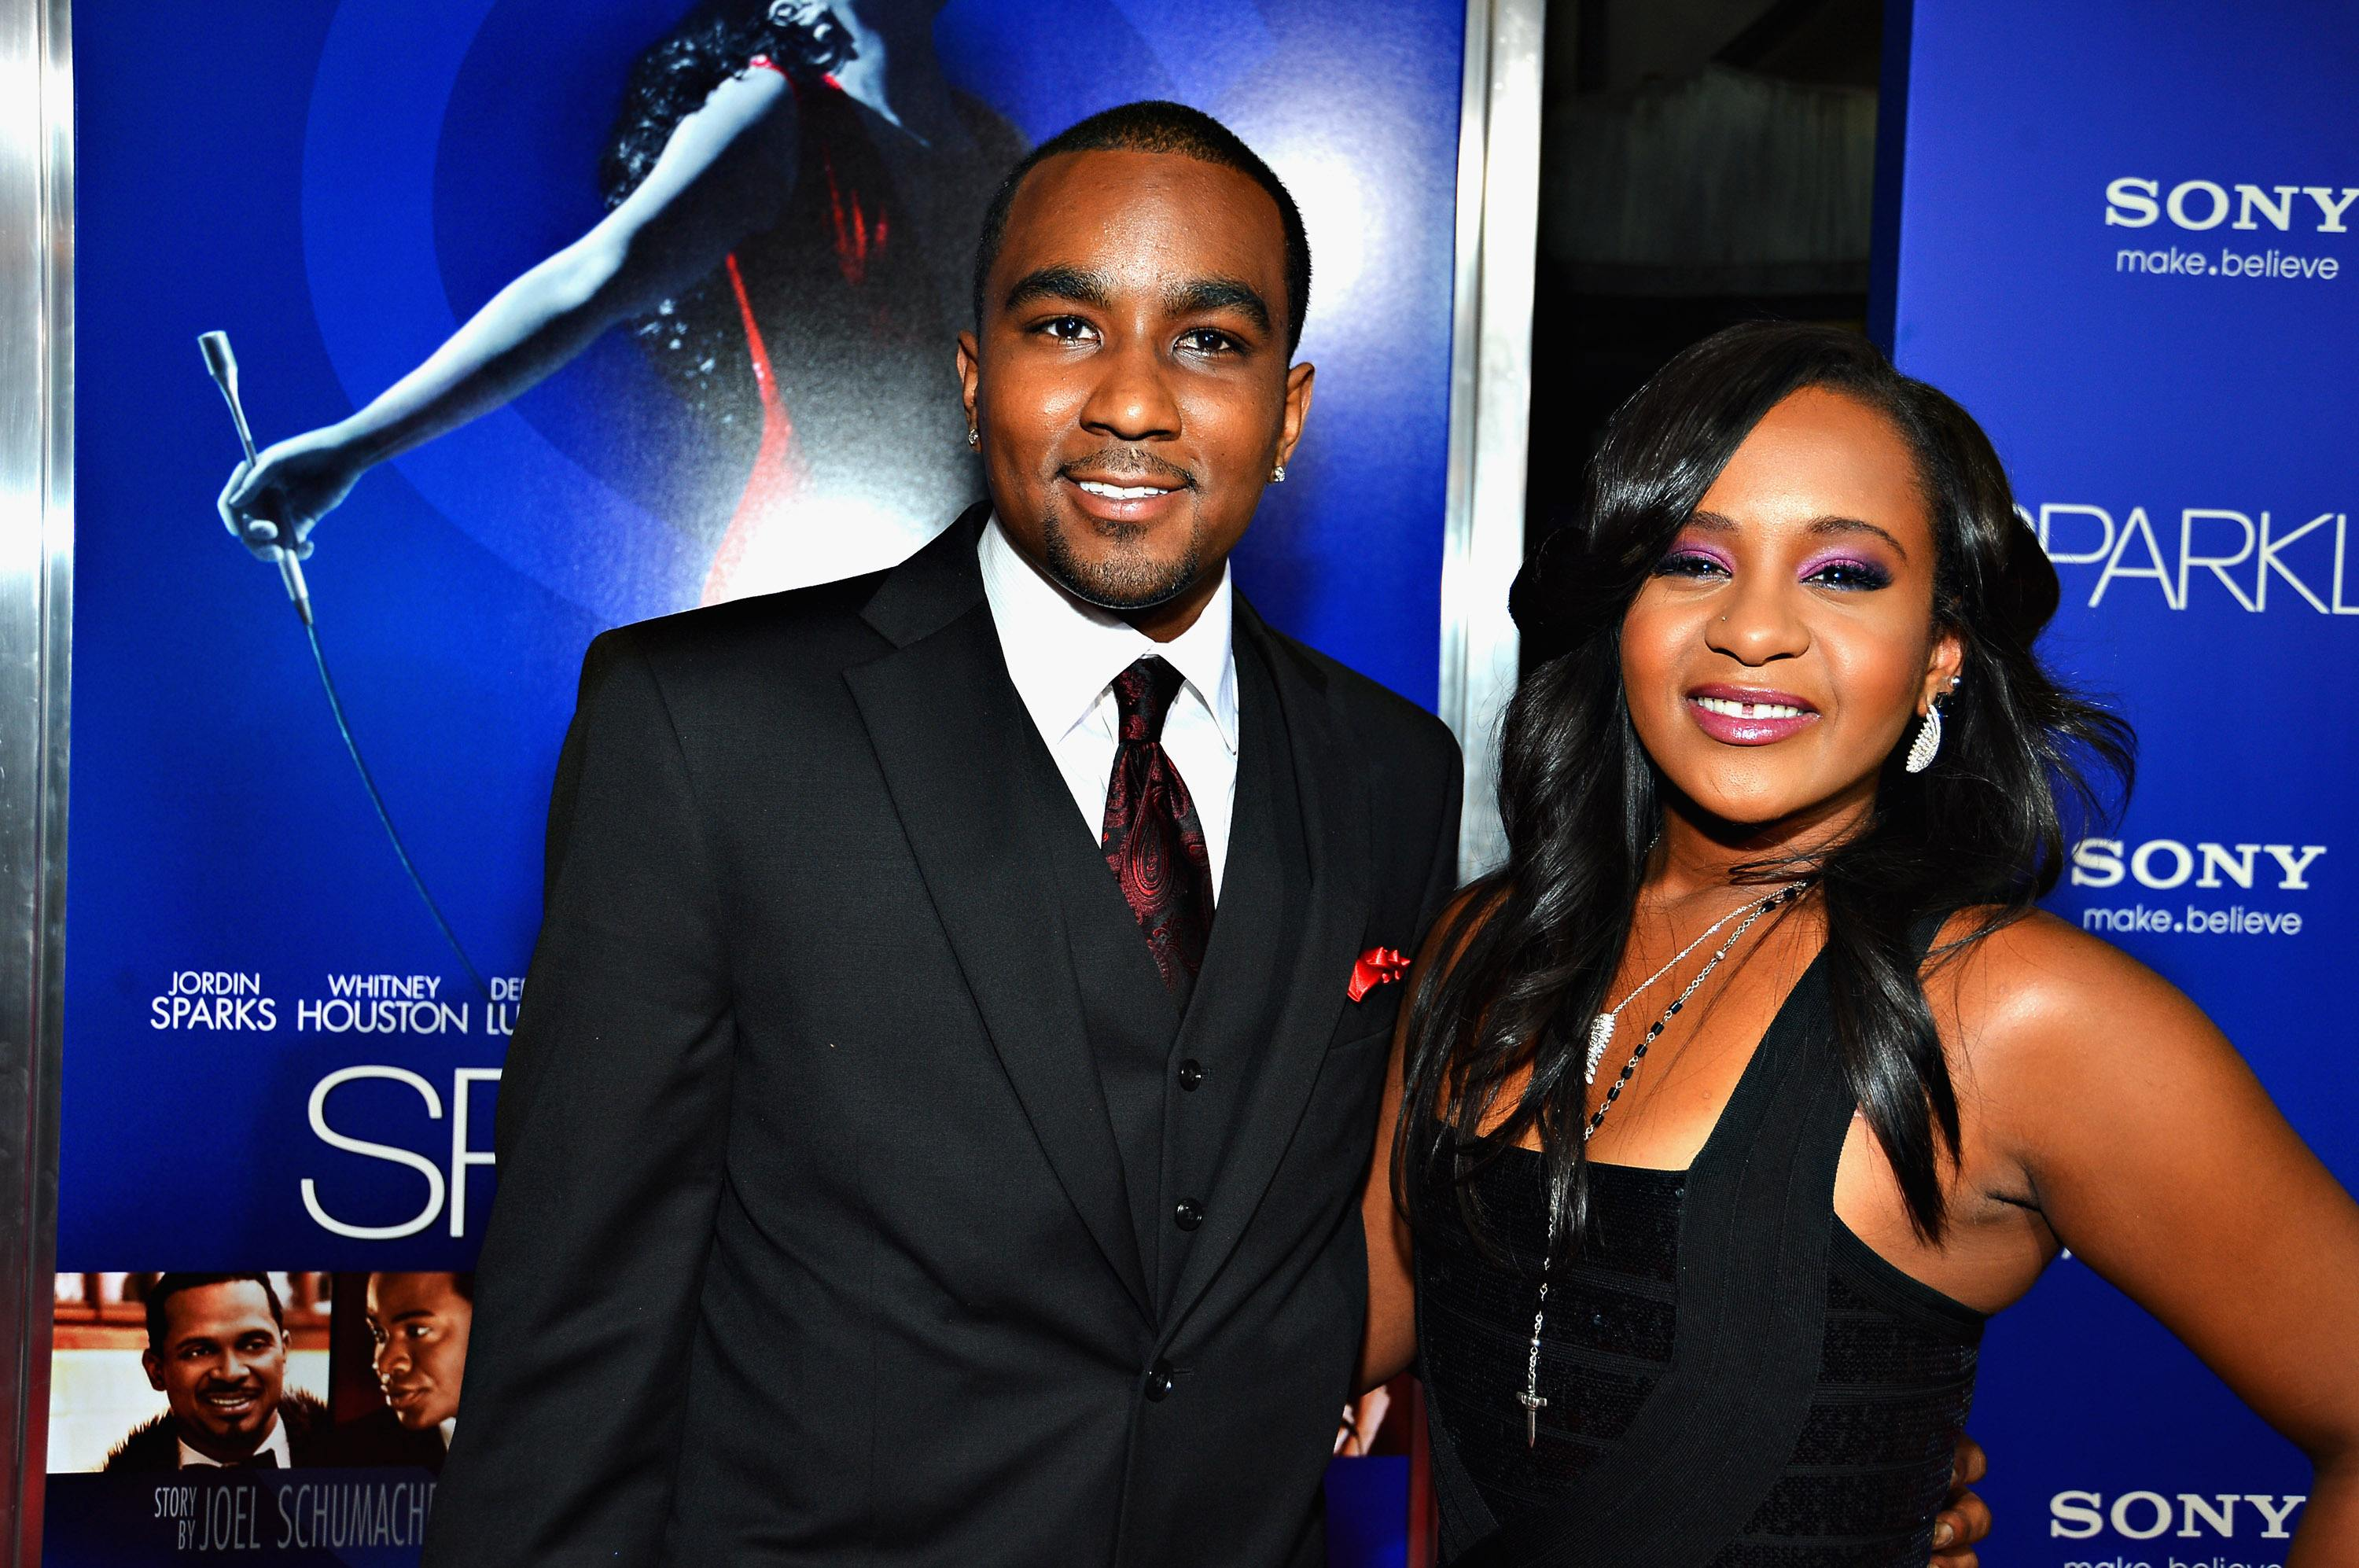 Everything We Know About The Death Of Bobbi Kristina Brown